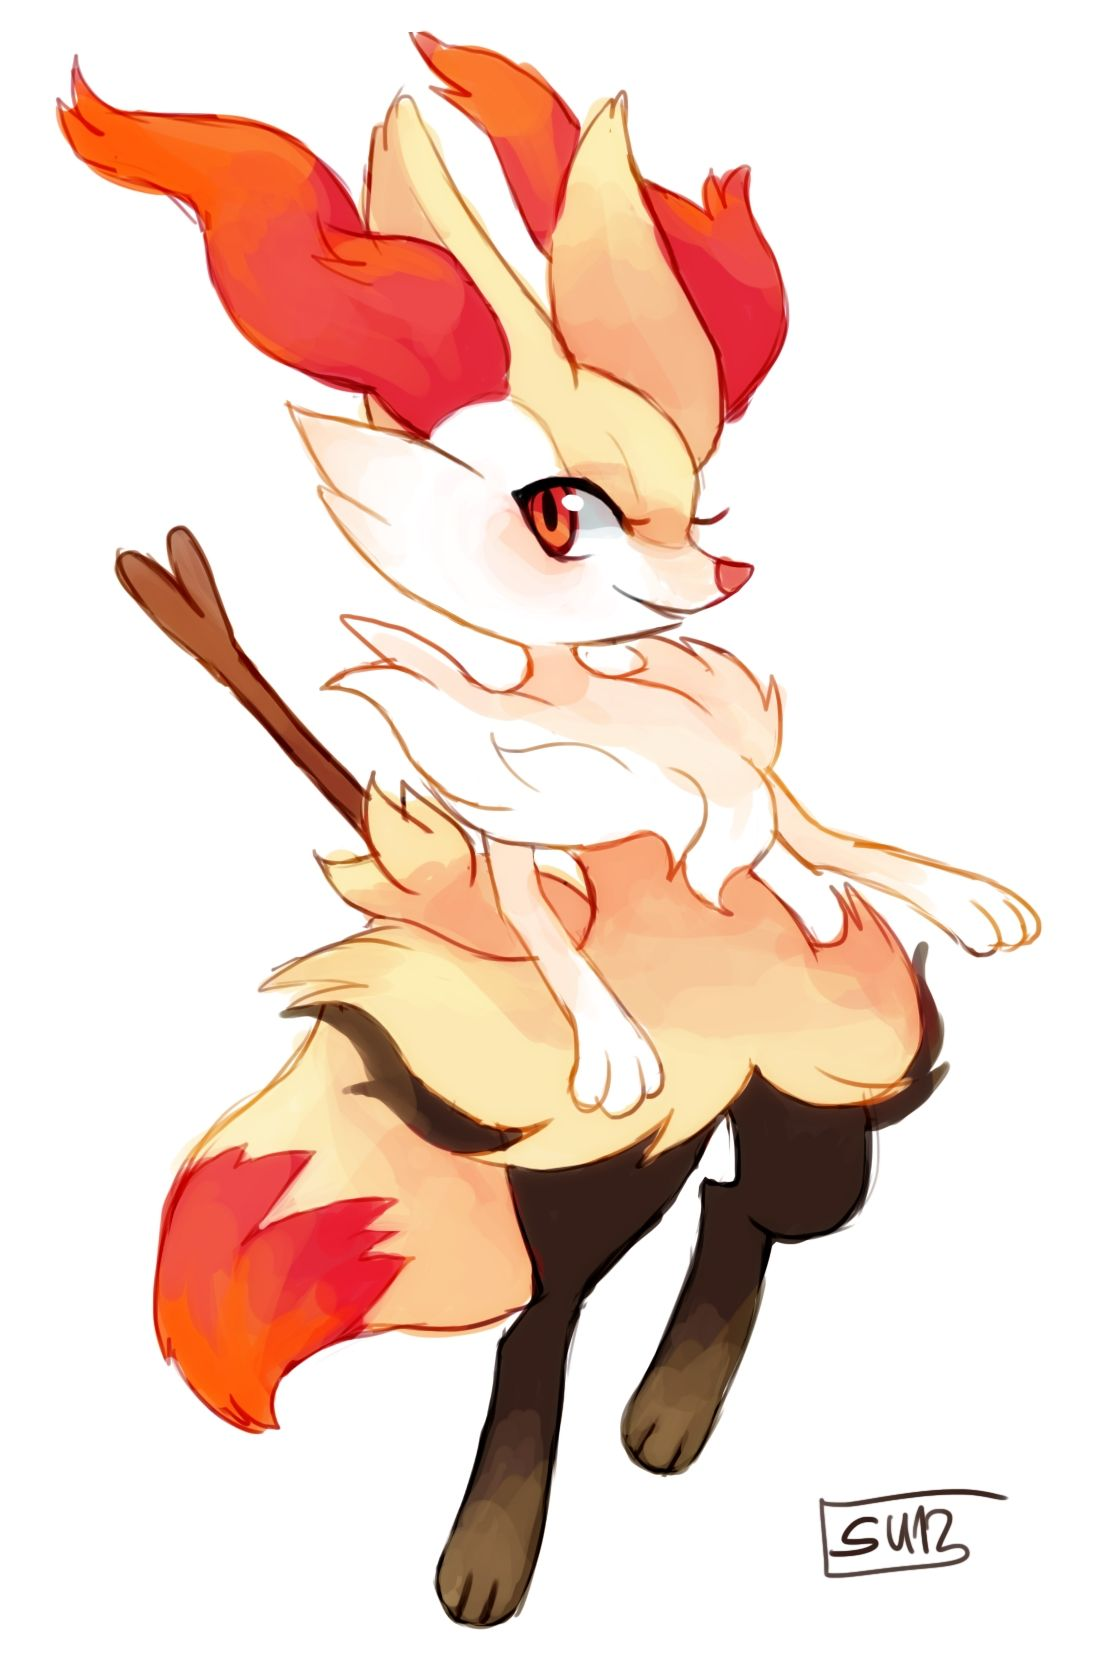 Braixen  Pokemon  Pinterest  Pokémon Anime and Video games